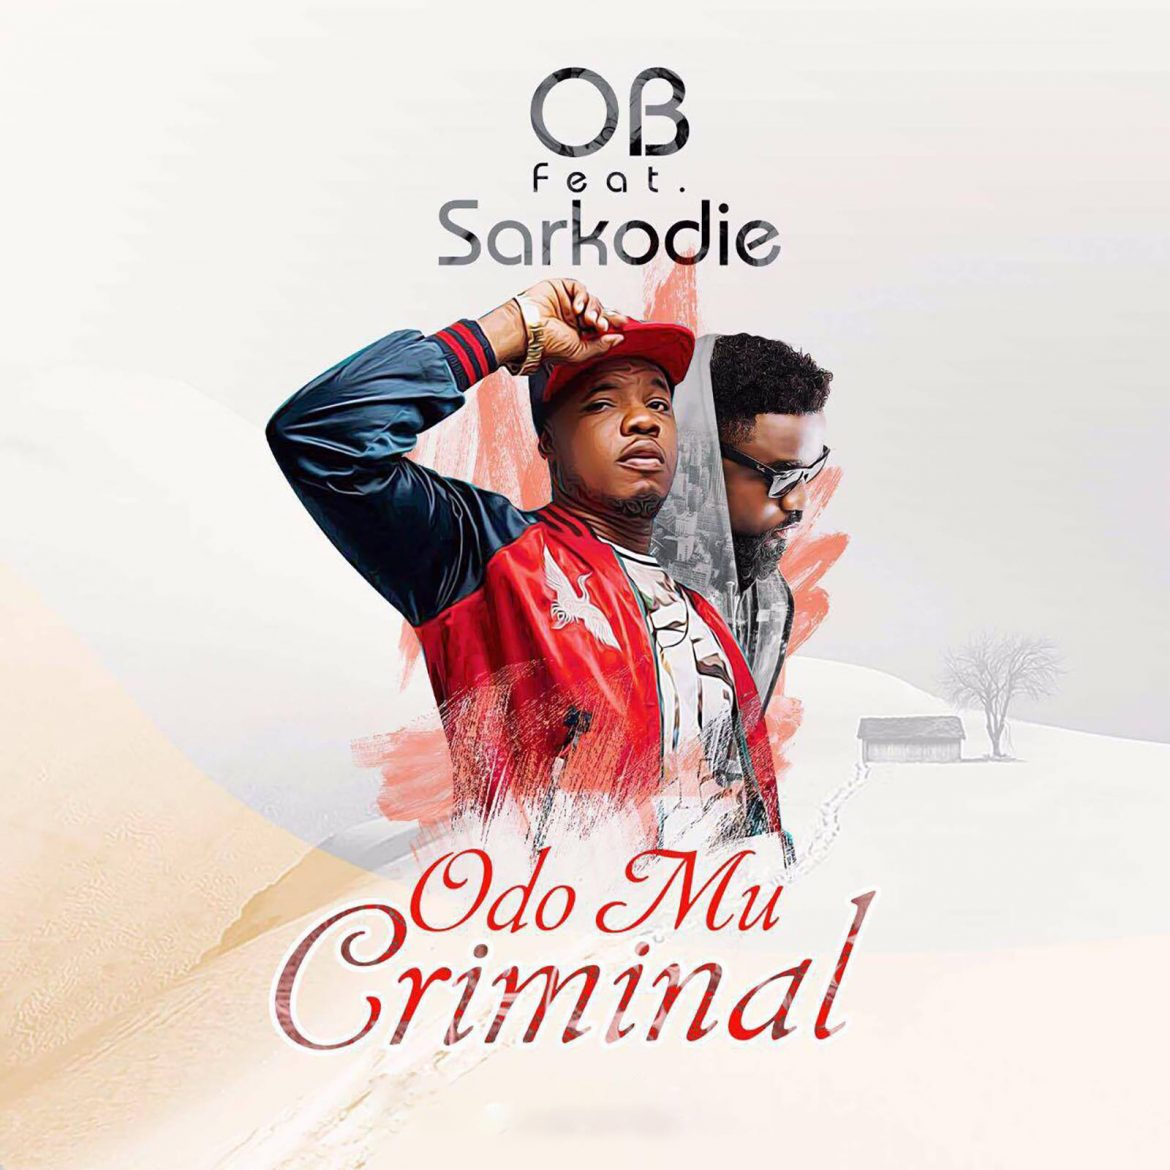 OB drops new banger with Sarkodie